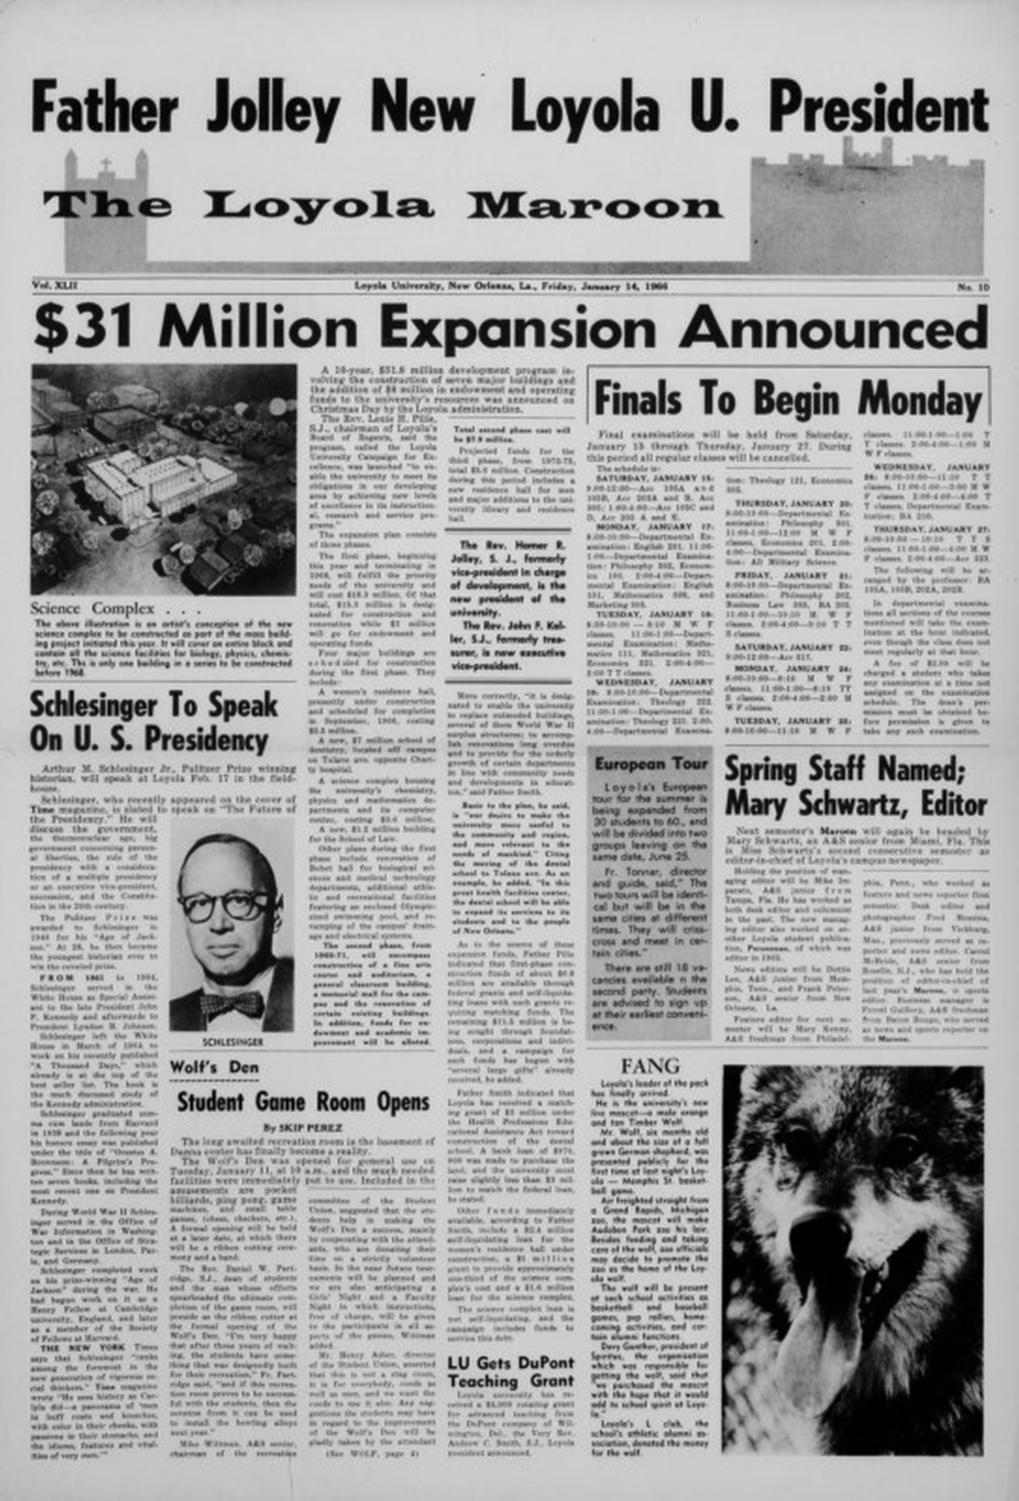 The Jan. 16, 1966 front cover of The Maroon.